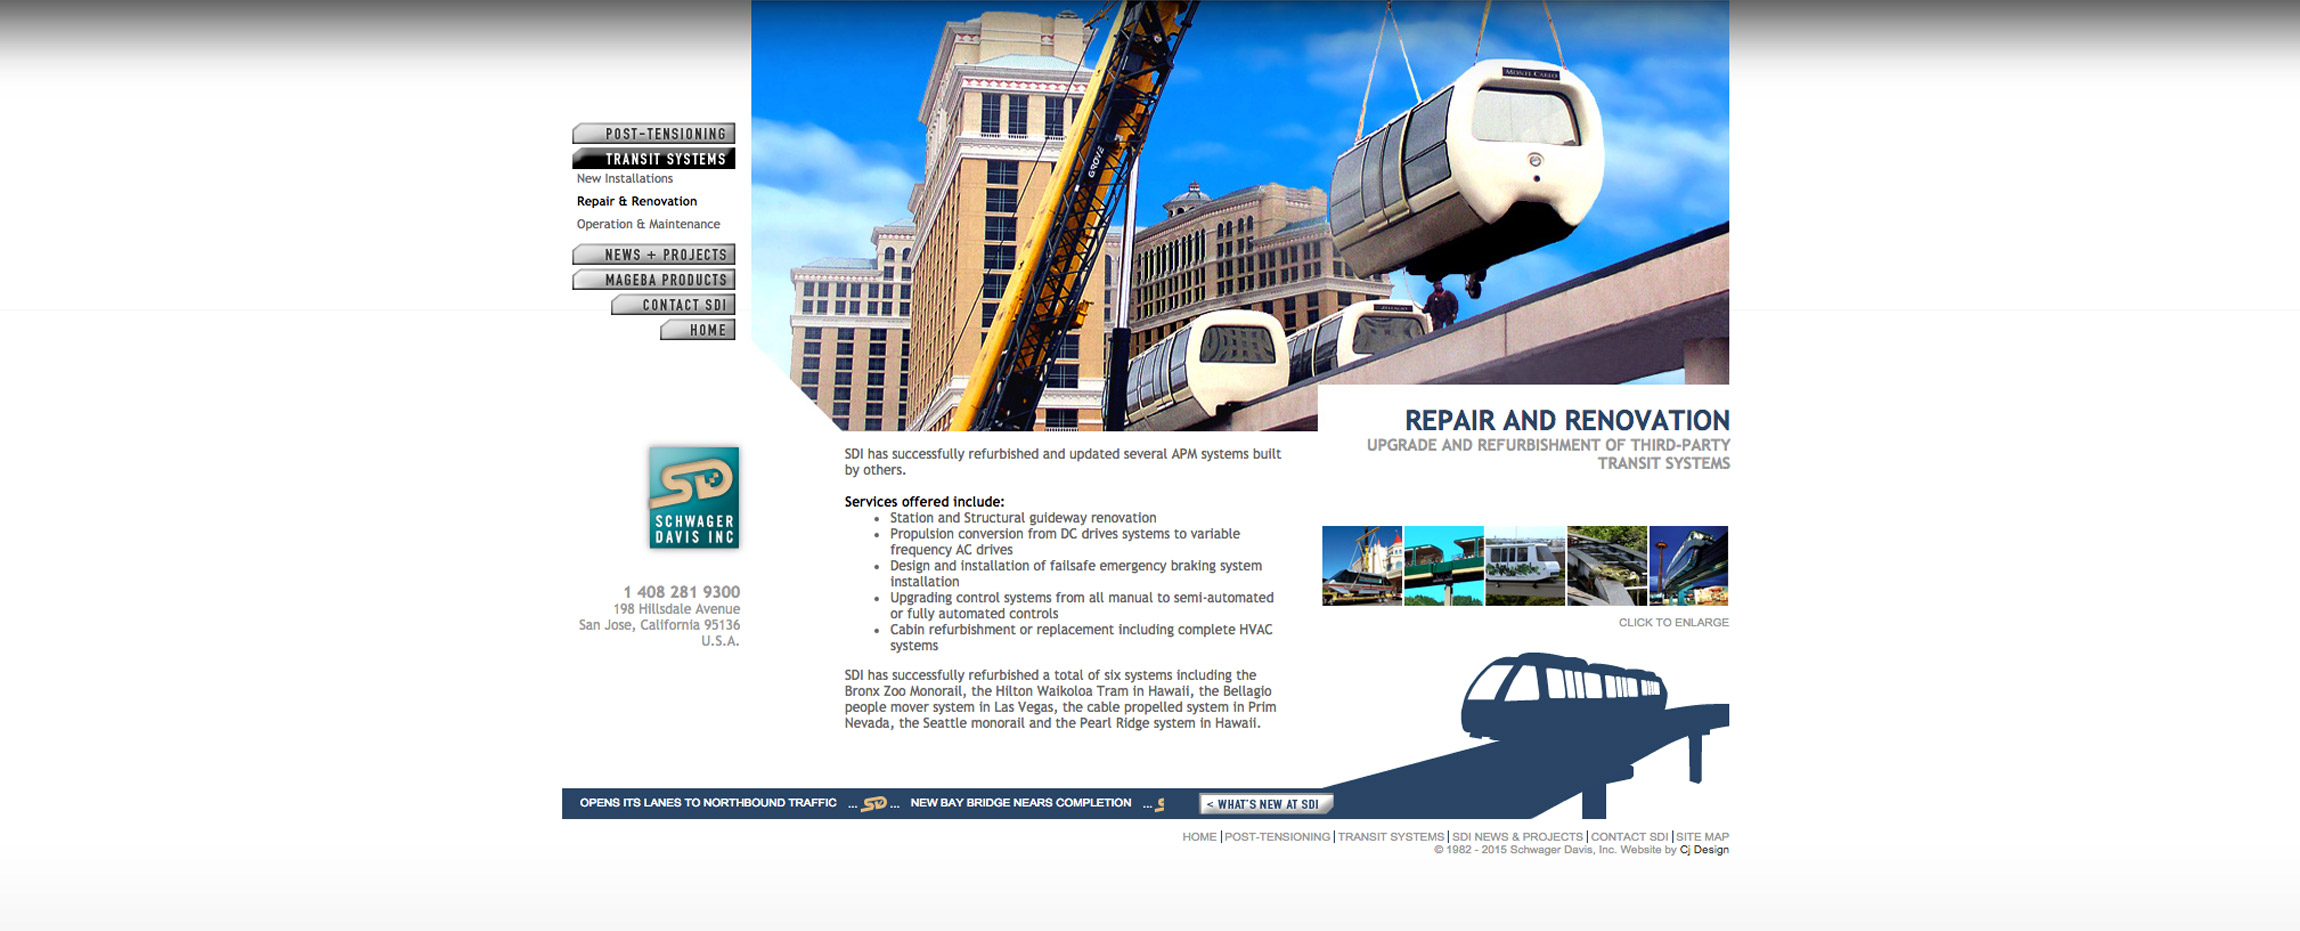 SDI Schwager Davis, Inc. constuction transit repair - Graphic Regime